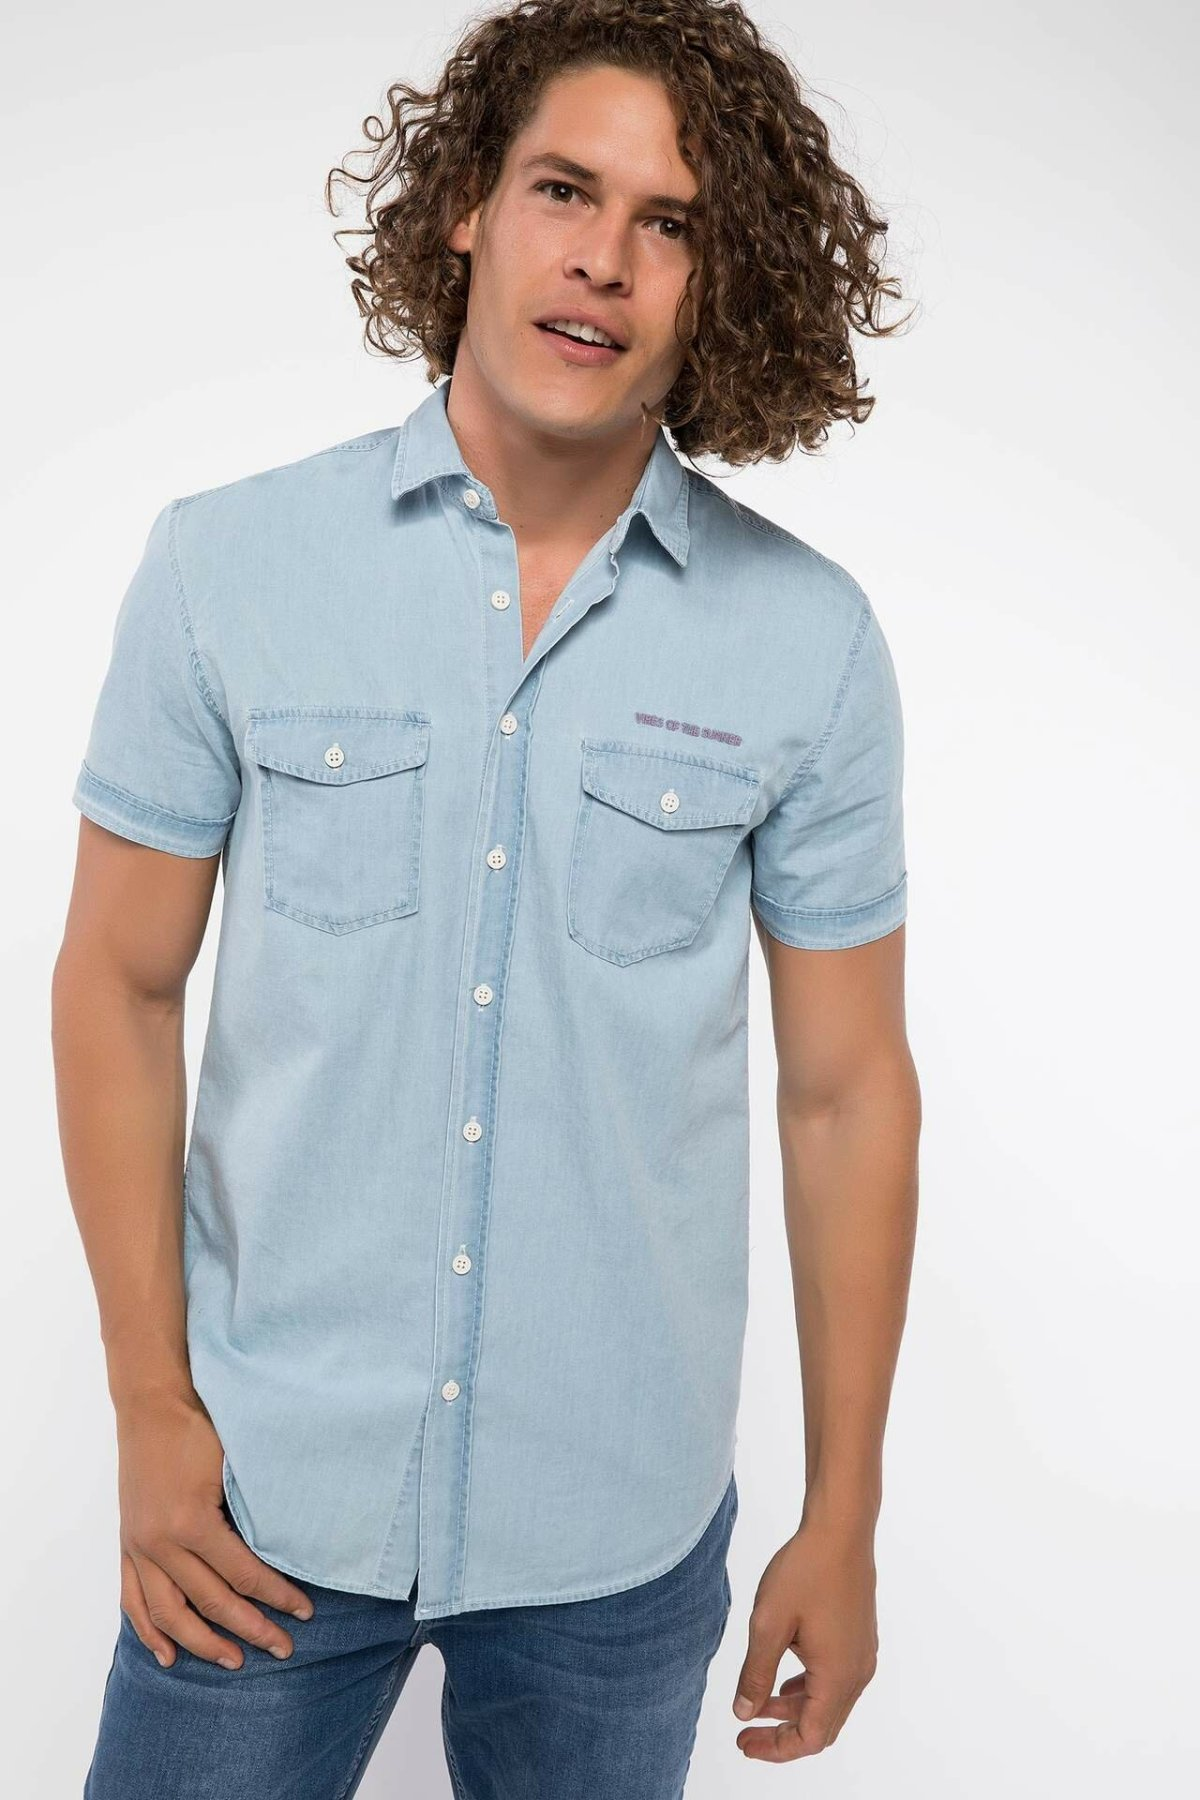 DeFacto Fashion Lapel Collar Men Casual Blue Shirt Short Sleeve Dual Chest Pockets Solid Male Top Shirt-I8487AZ18HS-I8487AZ18HS